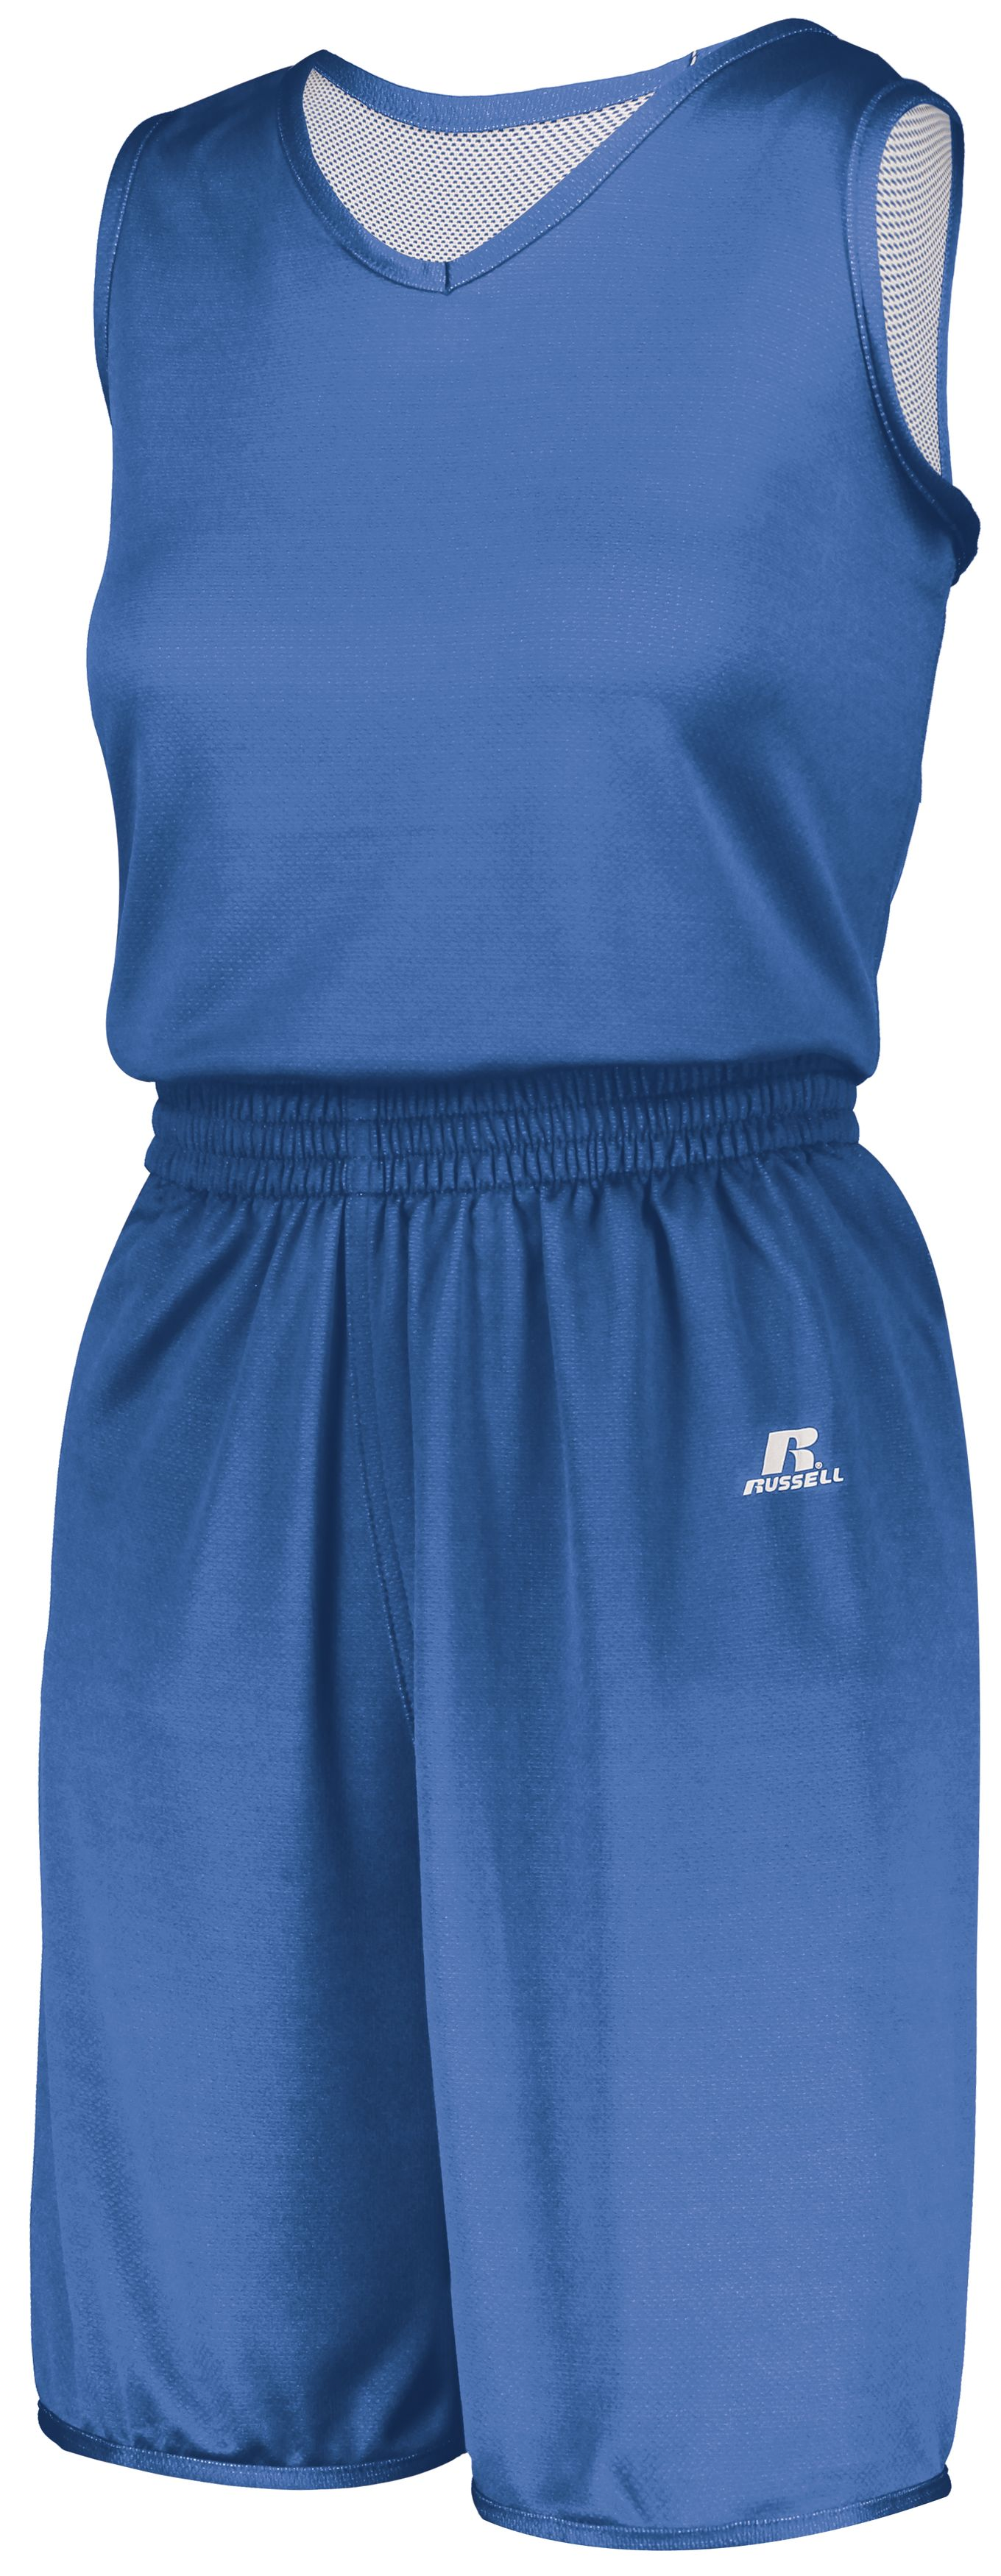 Ladies Undivided Solid Single Ply Reversible Shorts - COLUMBIA BLUE/WHITE